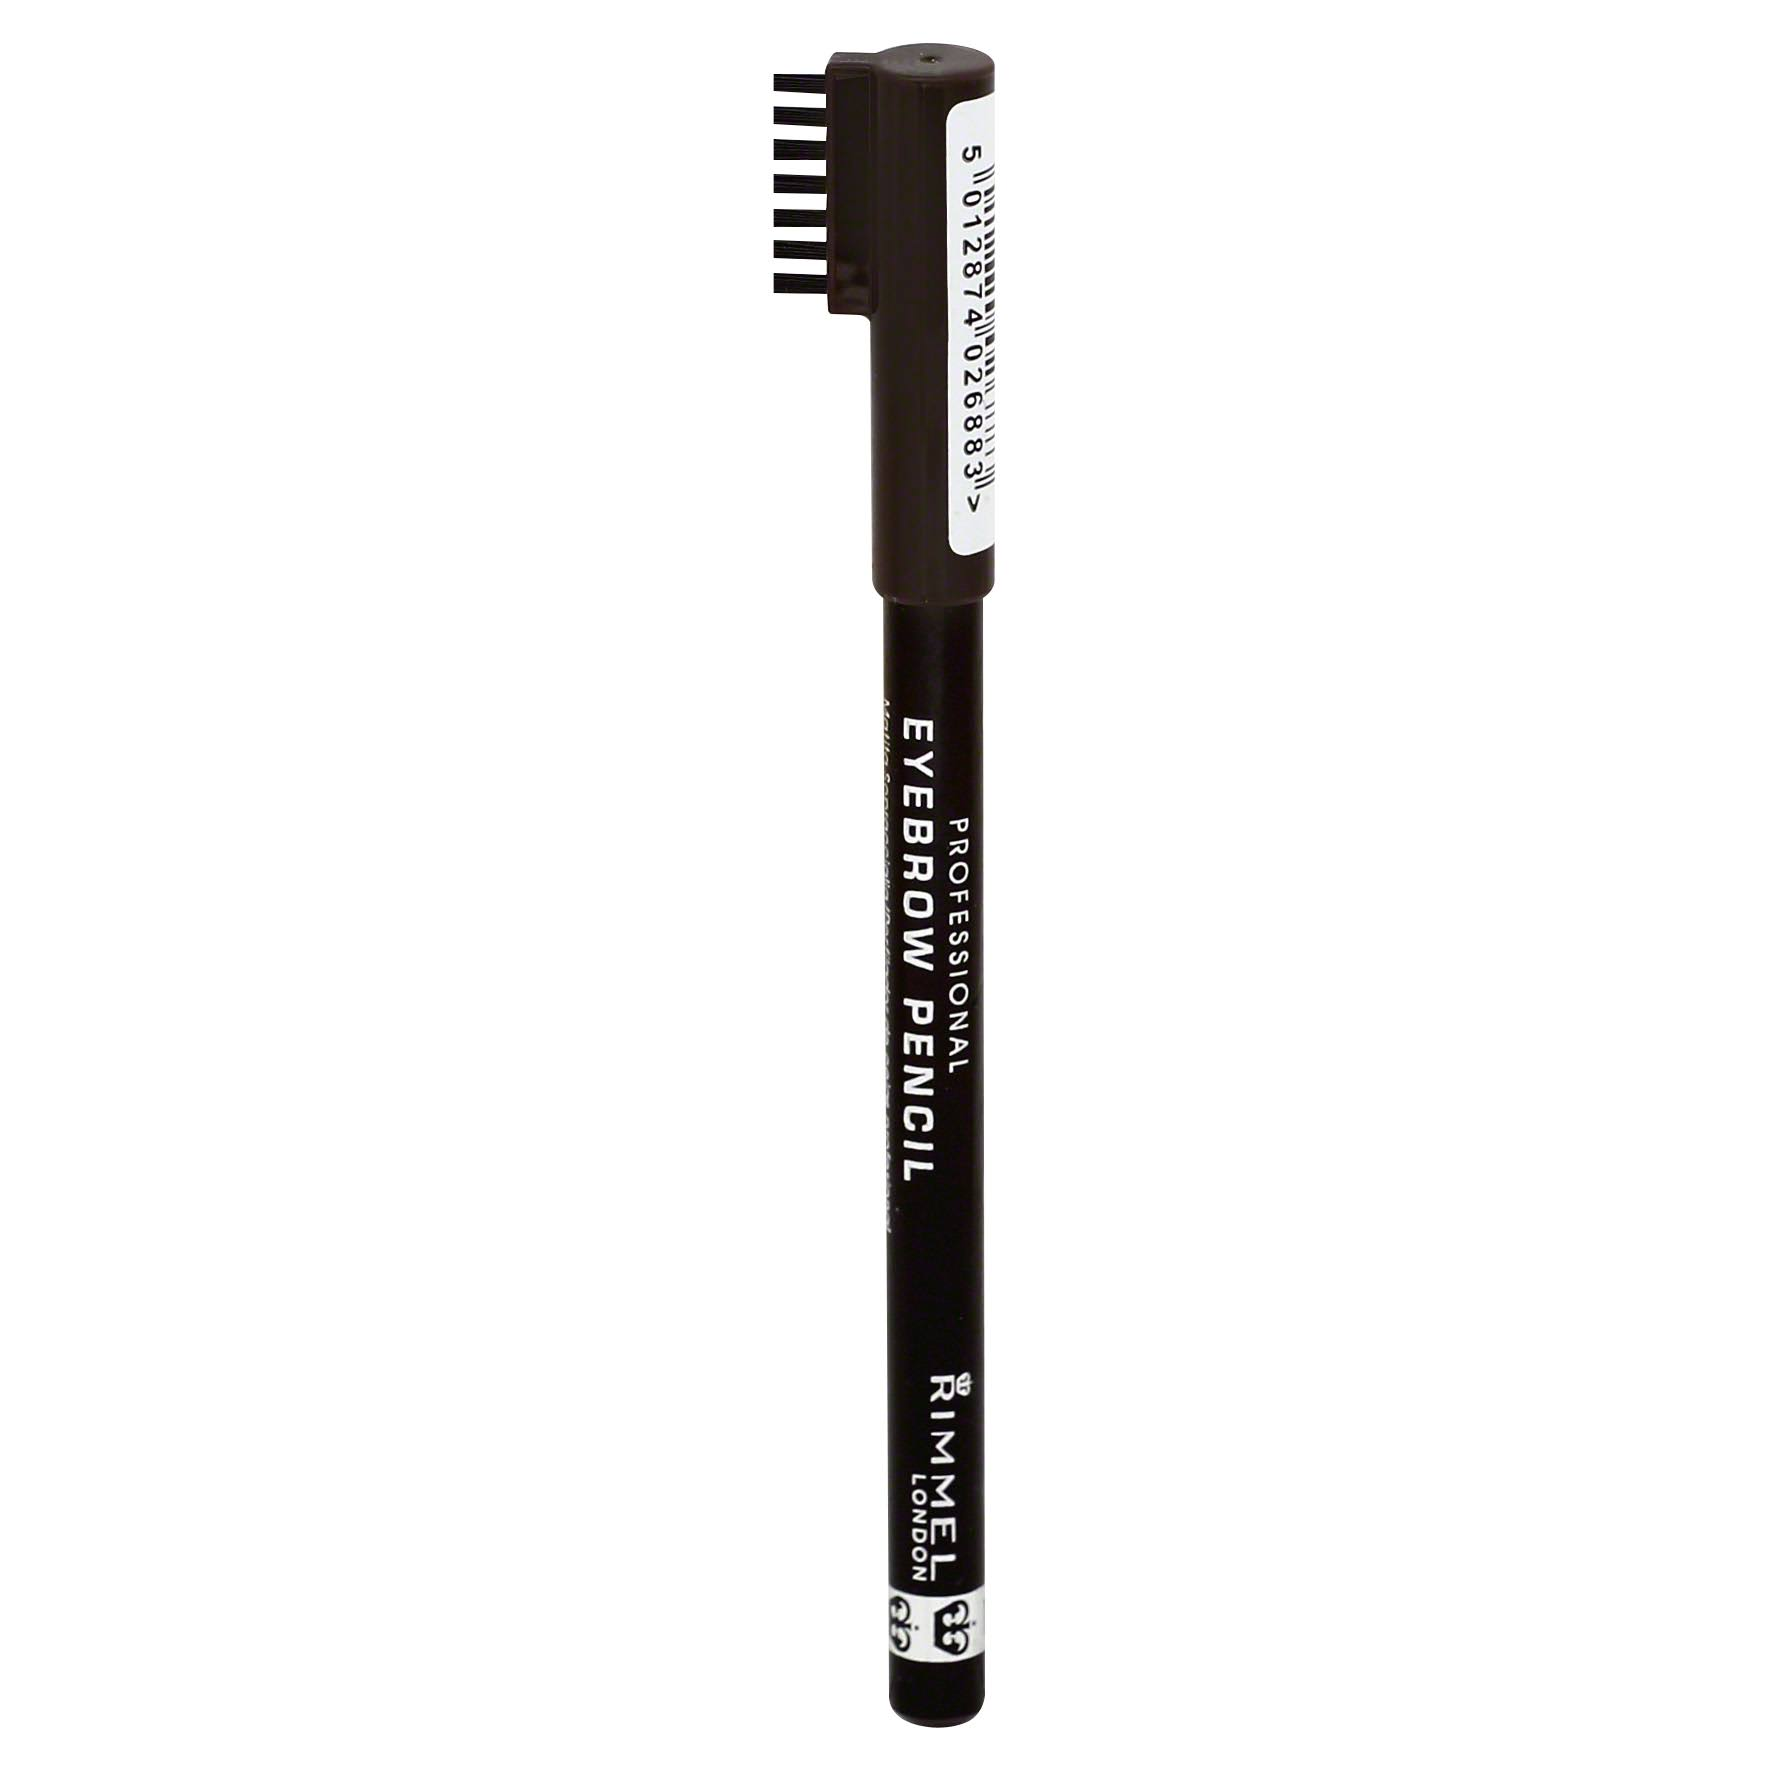 Rimmel London Professional Eyebrow Pencil - 004 Black Brown, 1.4g